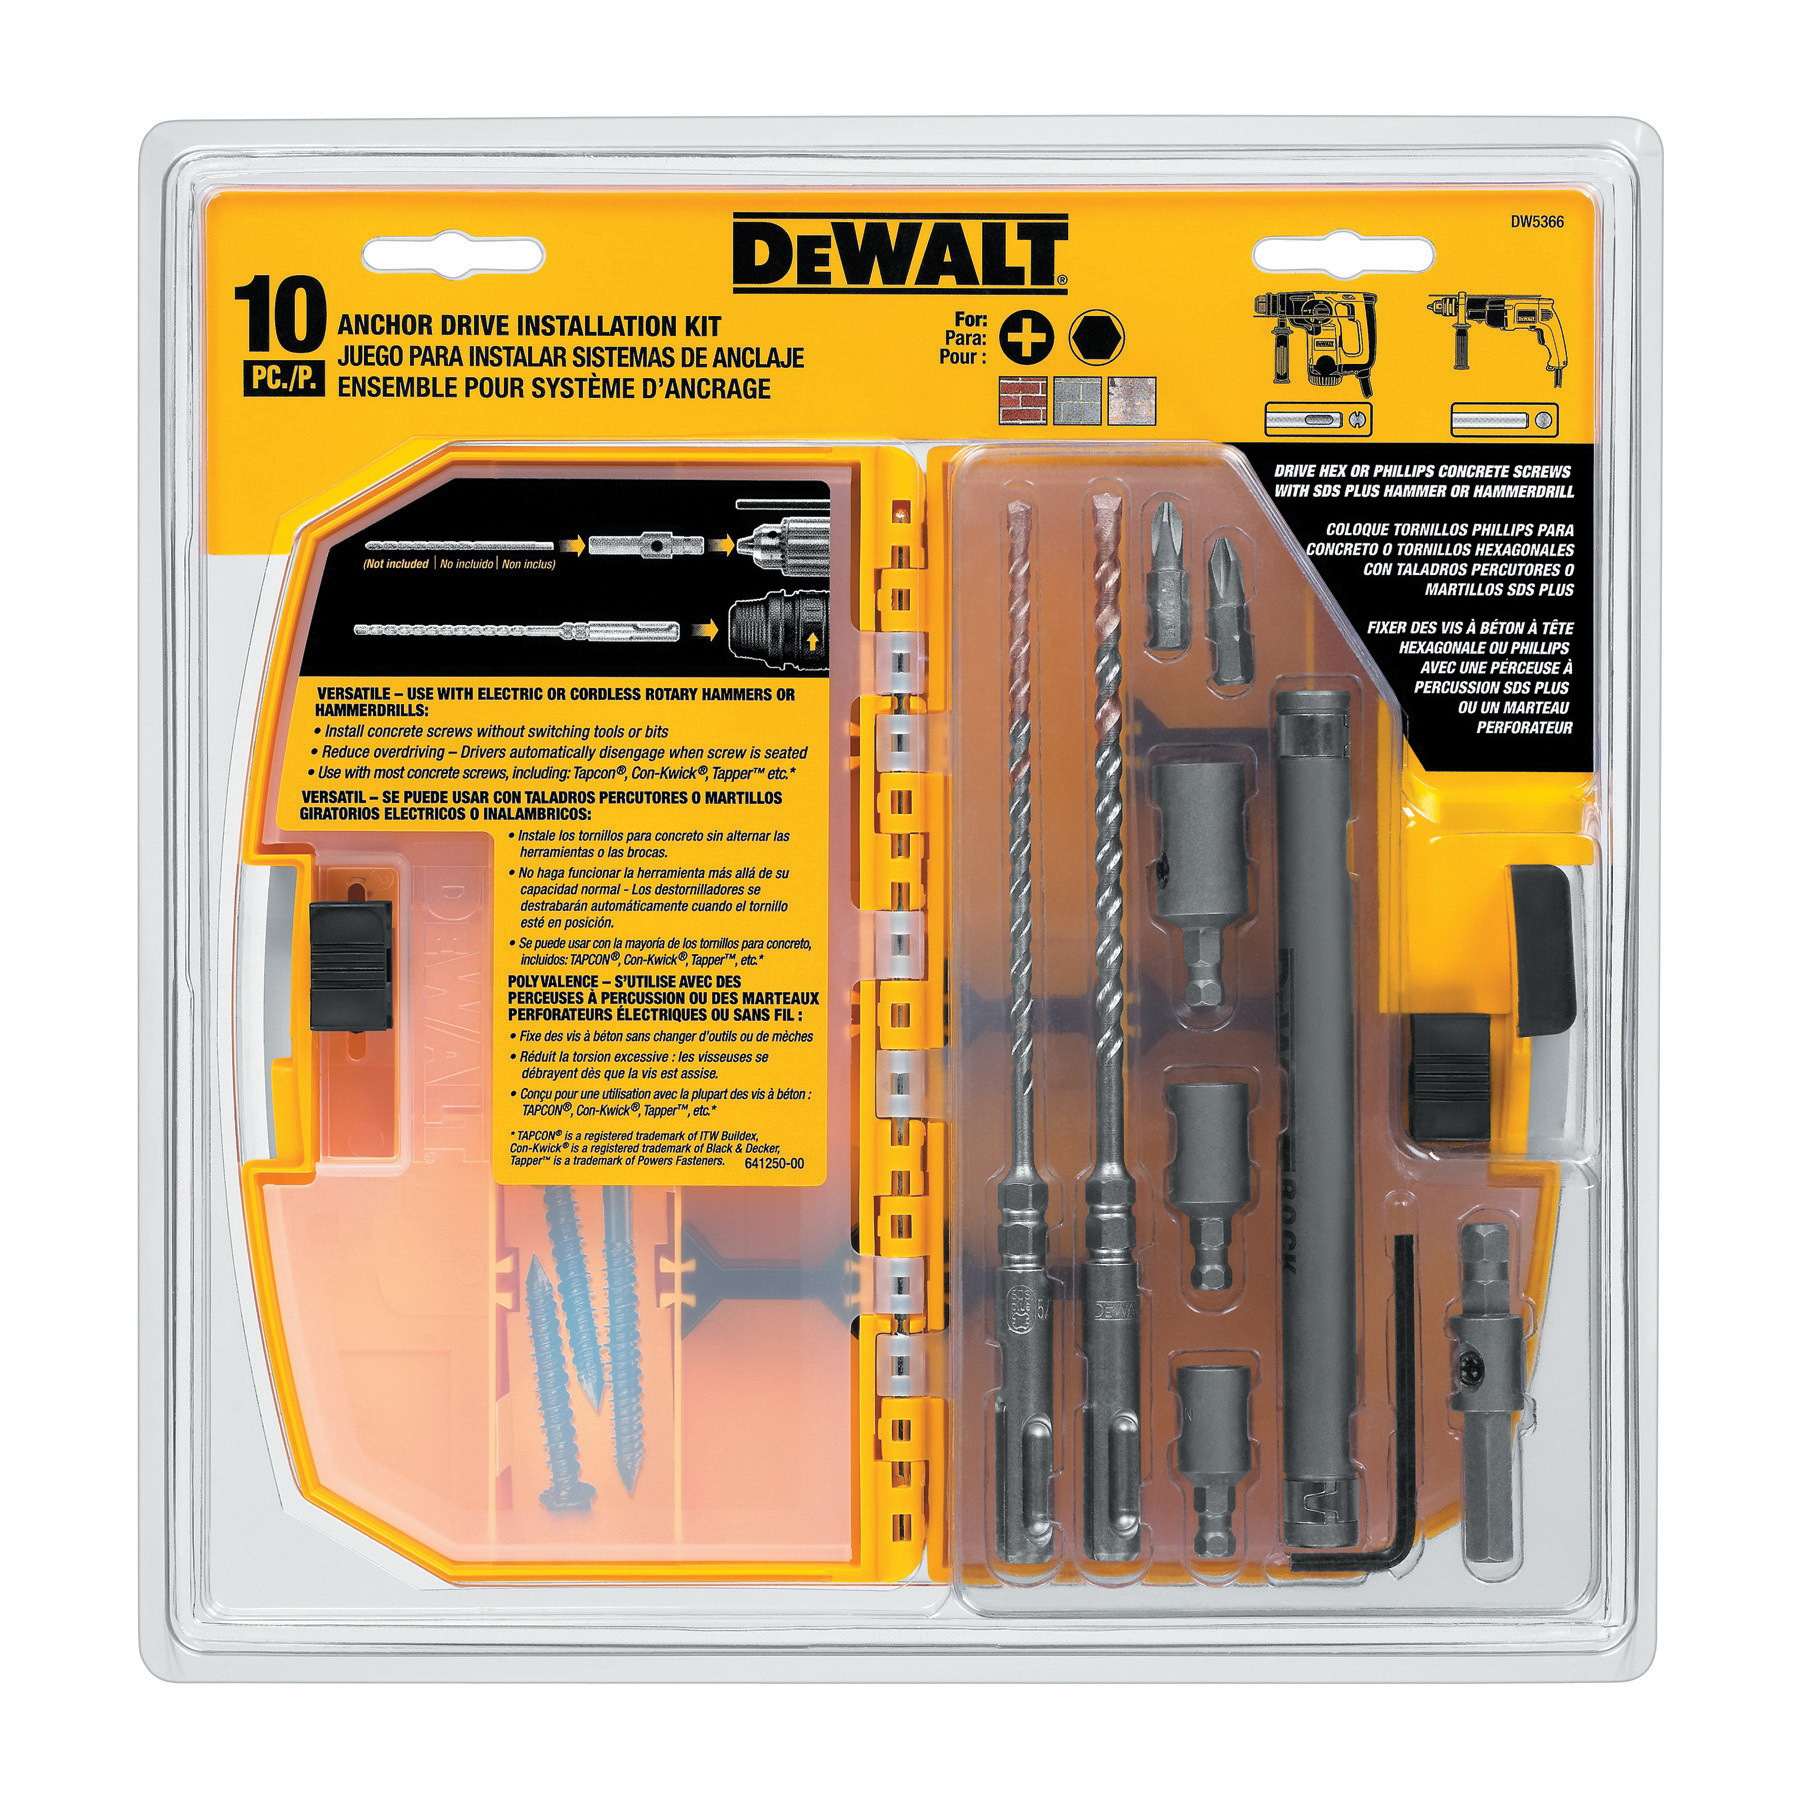 Black+Decker® DW5366 Masonry Anchor Installation Kit, 10 Pieces, For Use With SDS Rotary Hammers, Carbide Tip, Uncoated